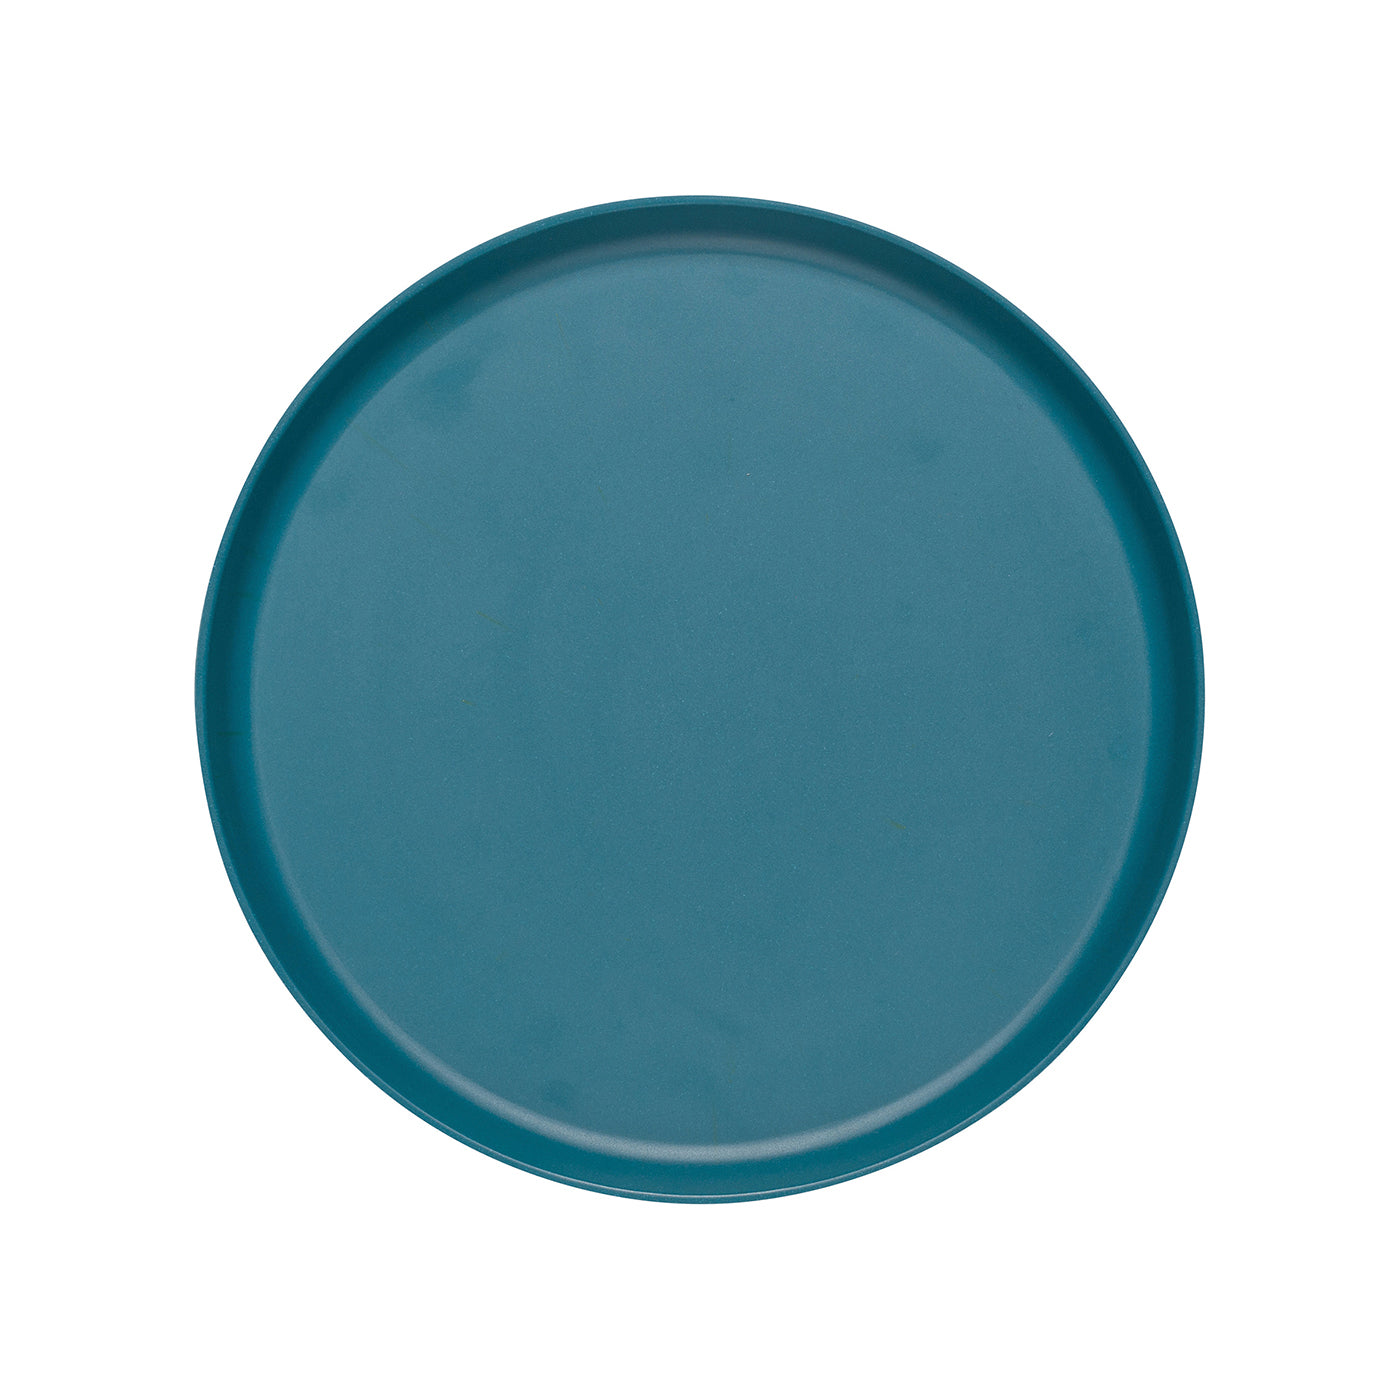 Fiesta Ecologie Dinner Plates Set of 4